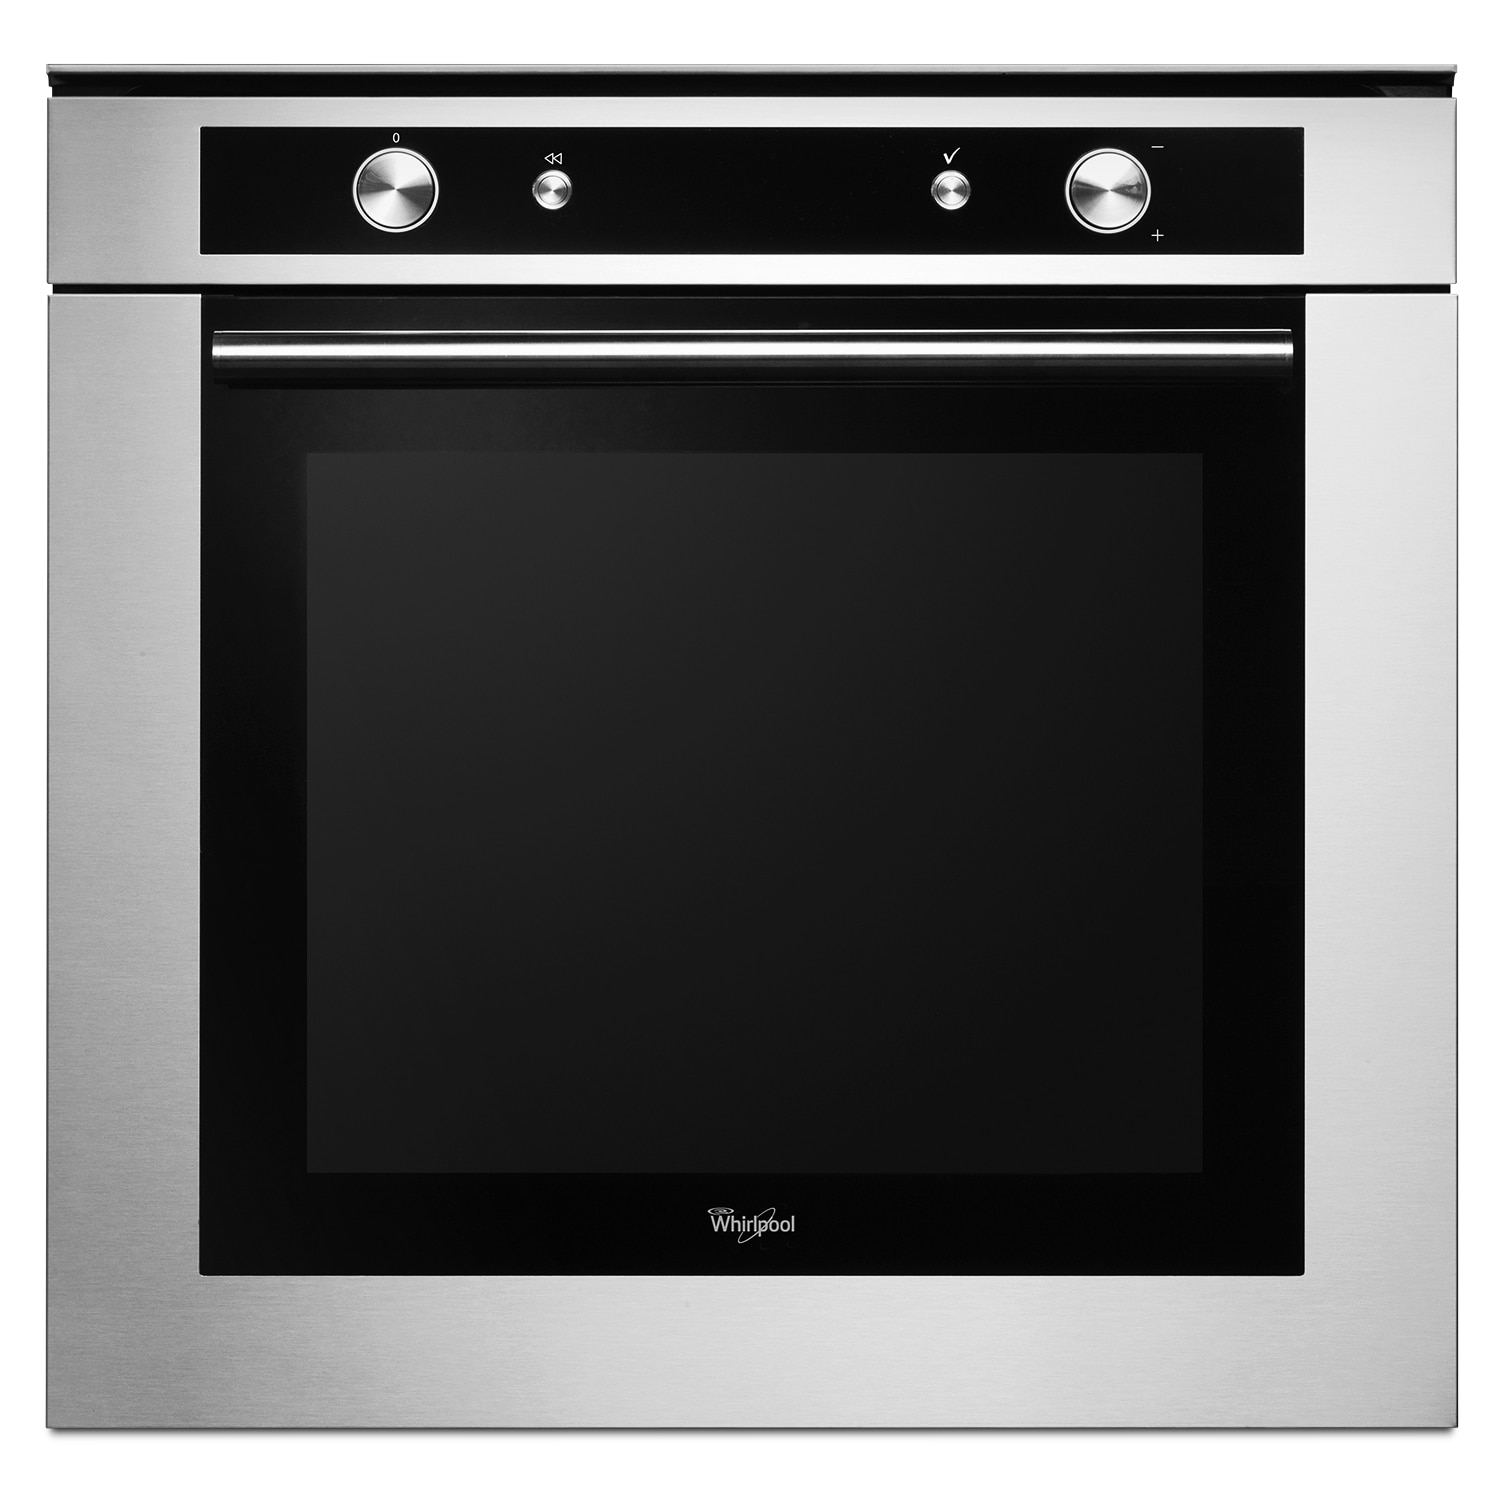 Whirlpool Stainless Steel Electric Convection Wall Oven (2.6 Cu. Ft.) - WOS52EM4AS